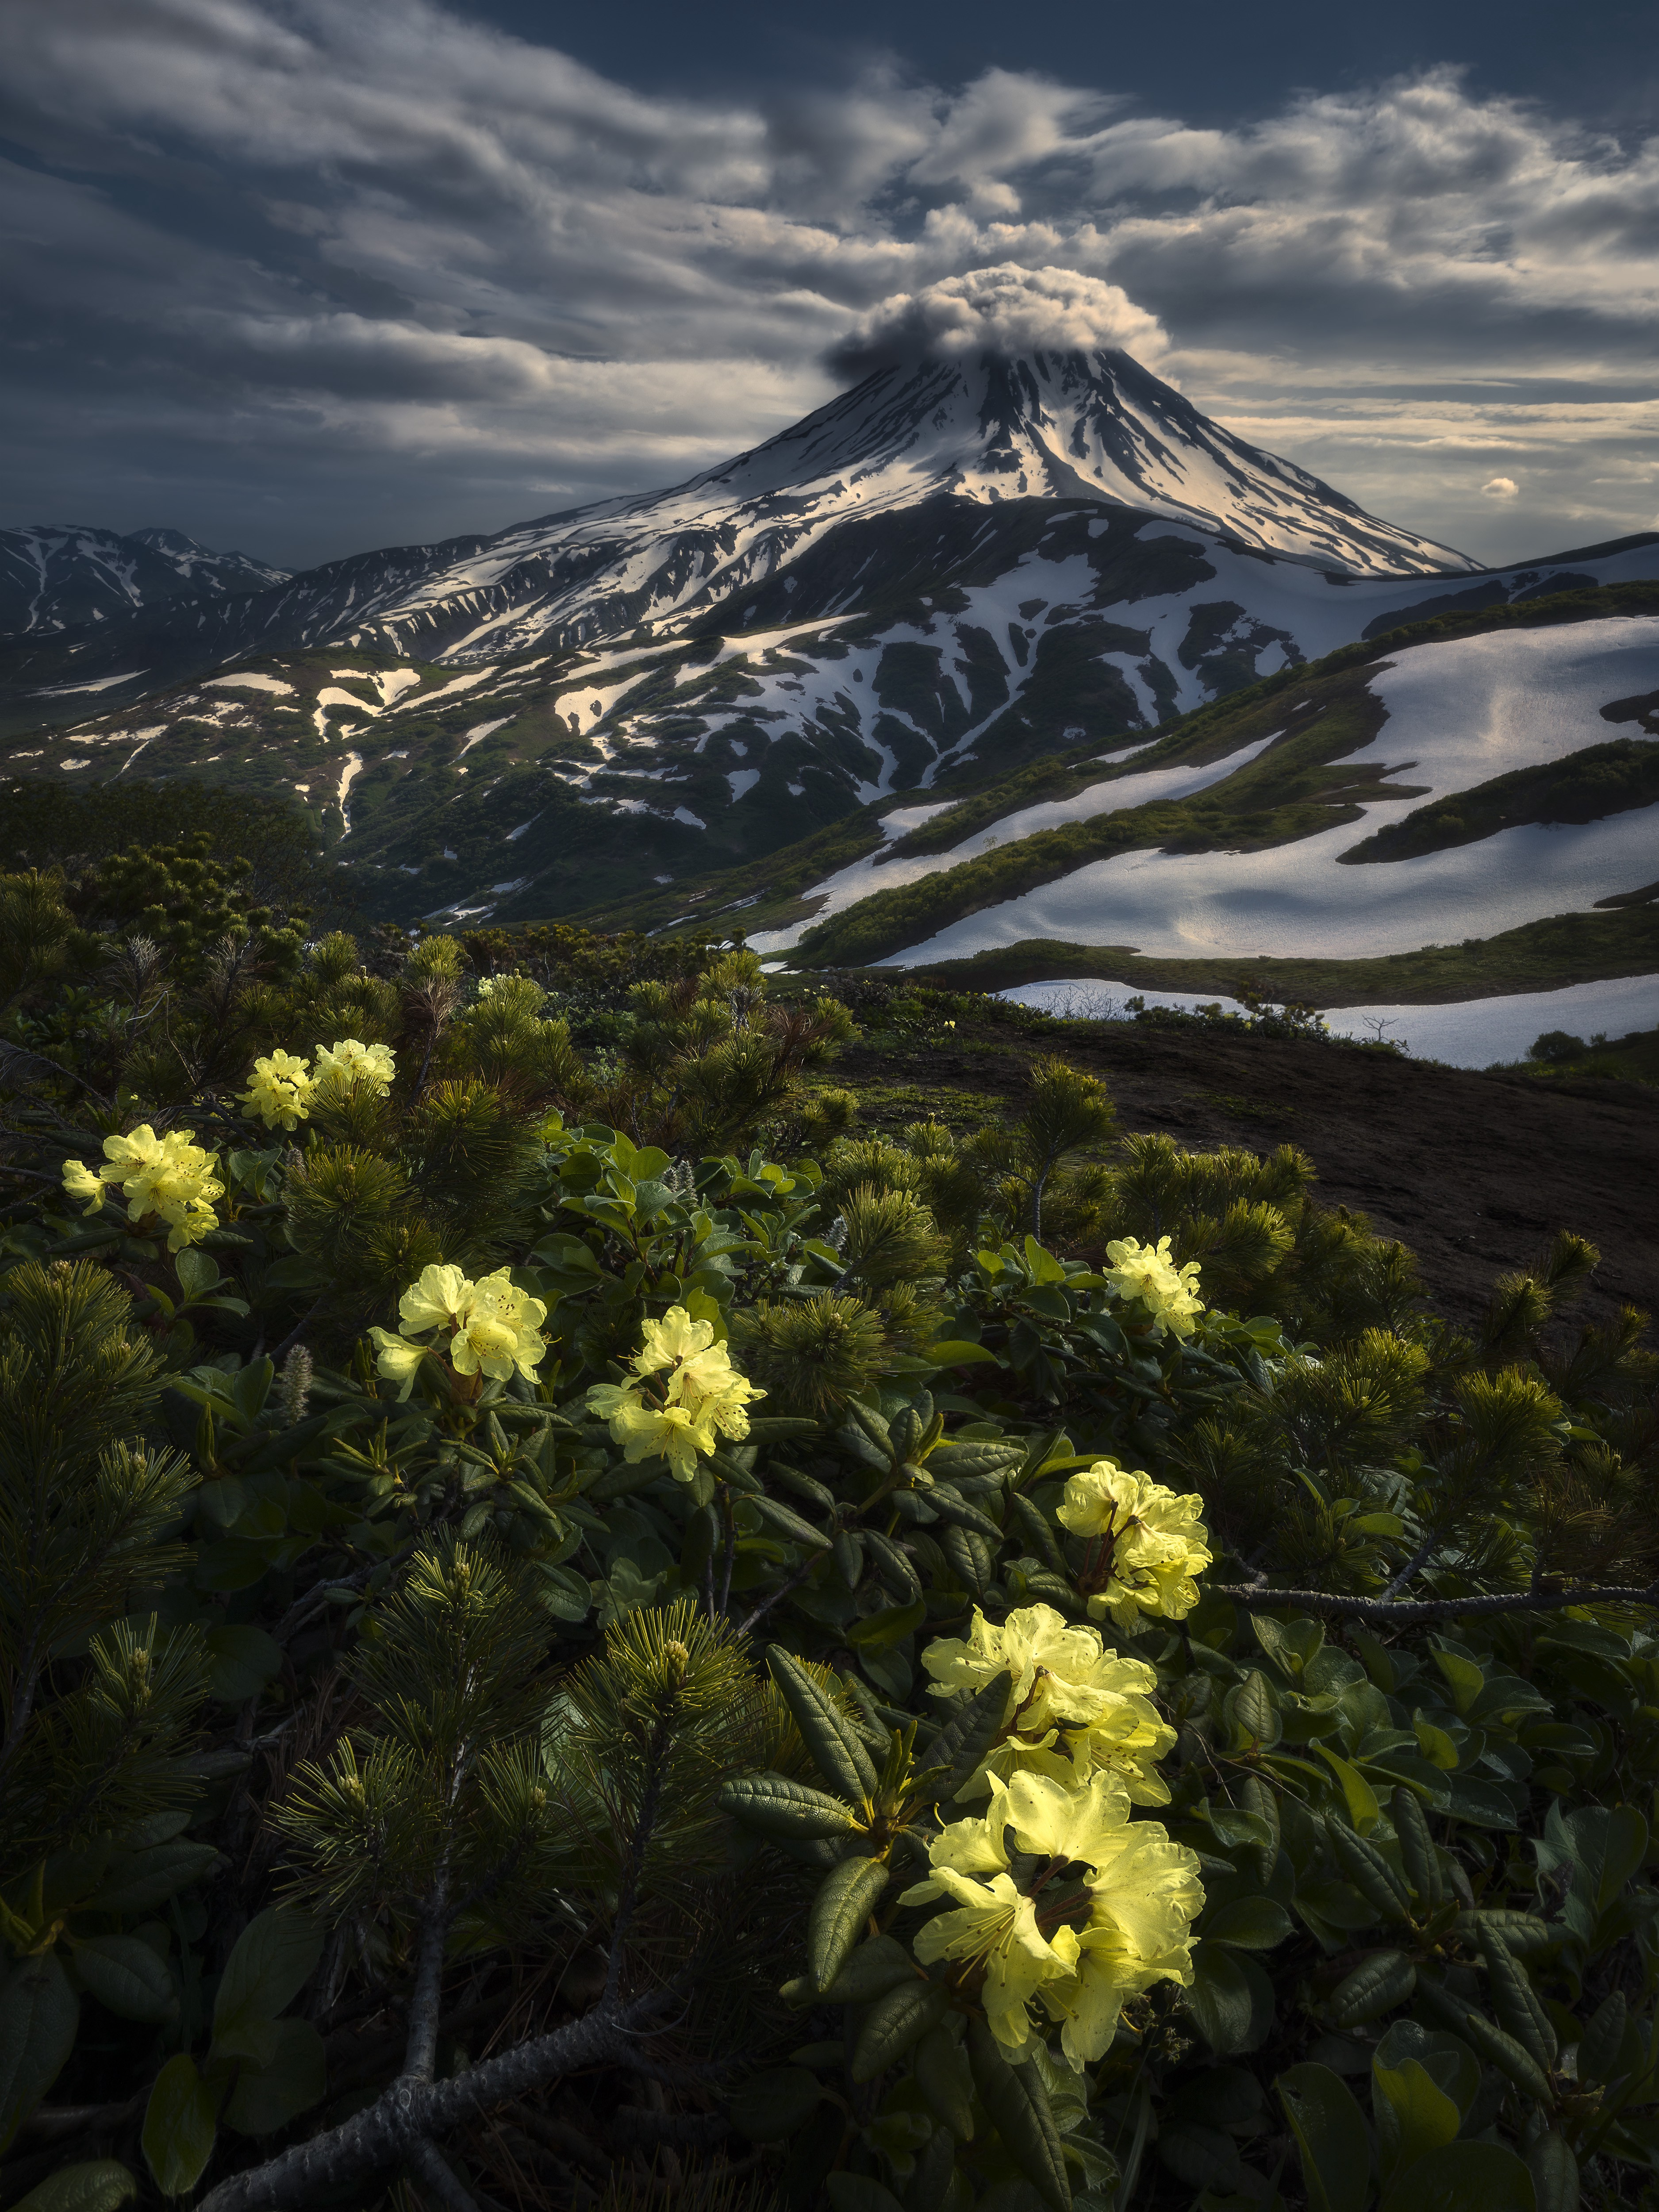 Yellow flowers in the foreground of a snowy mountain landscape